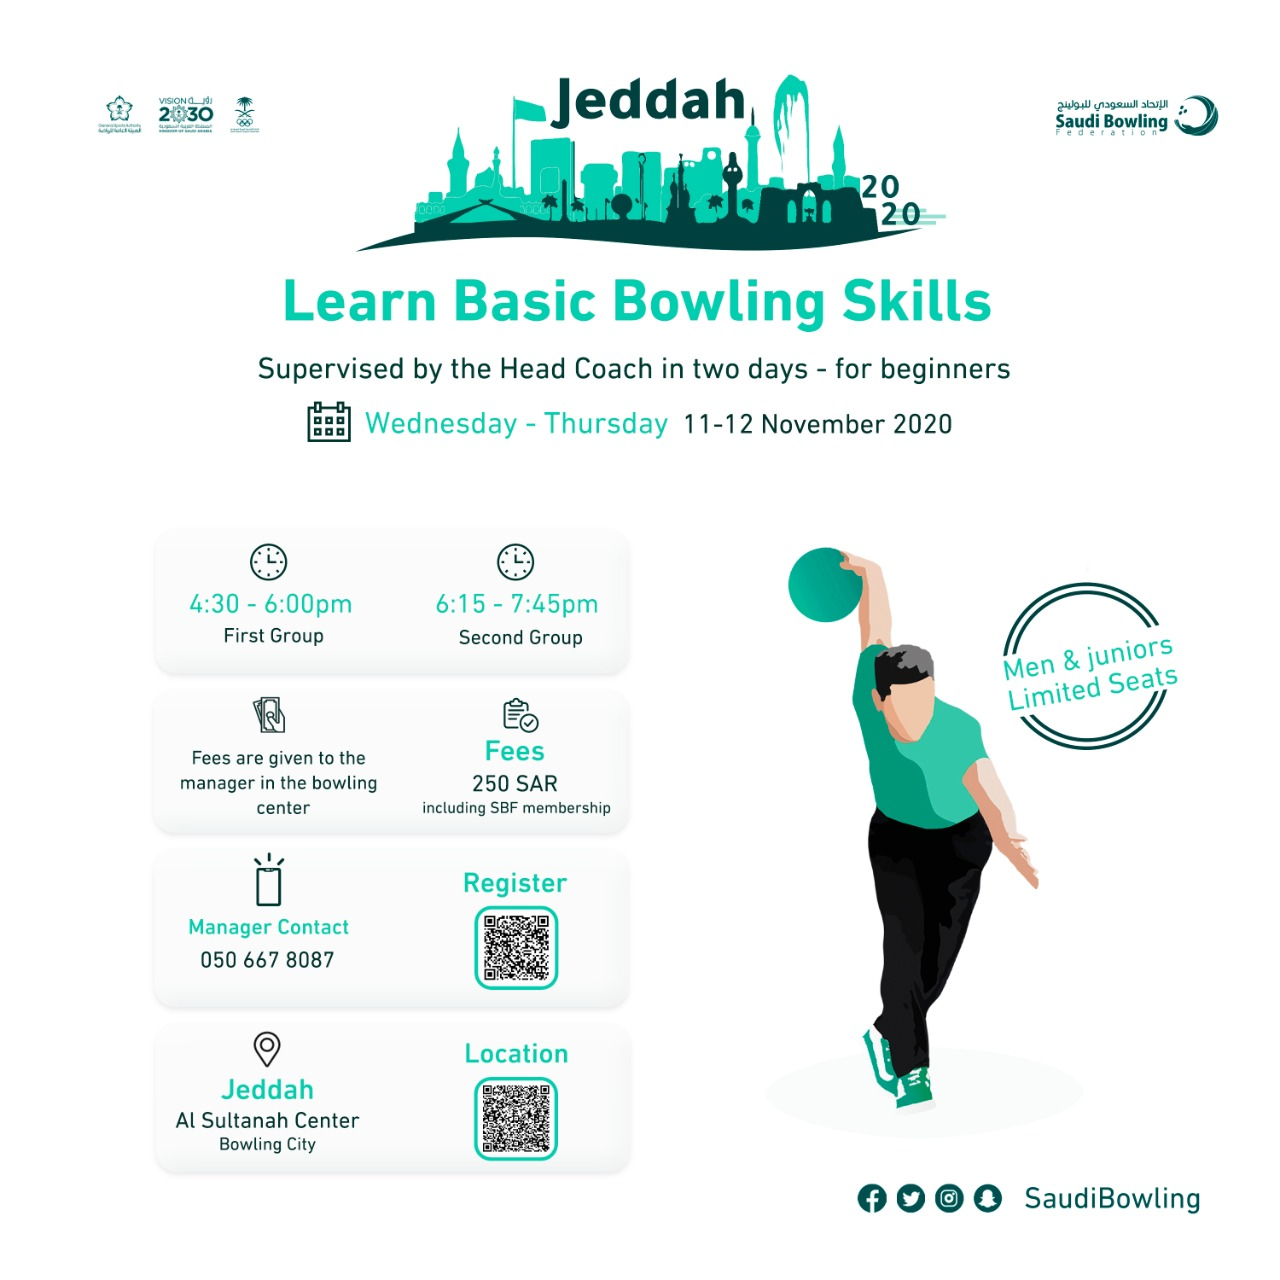 training-course-for-basic-bowling-skills-for-men-event-poster